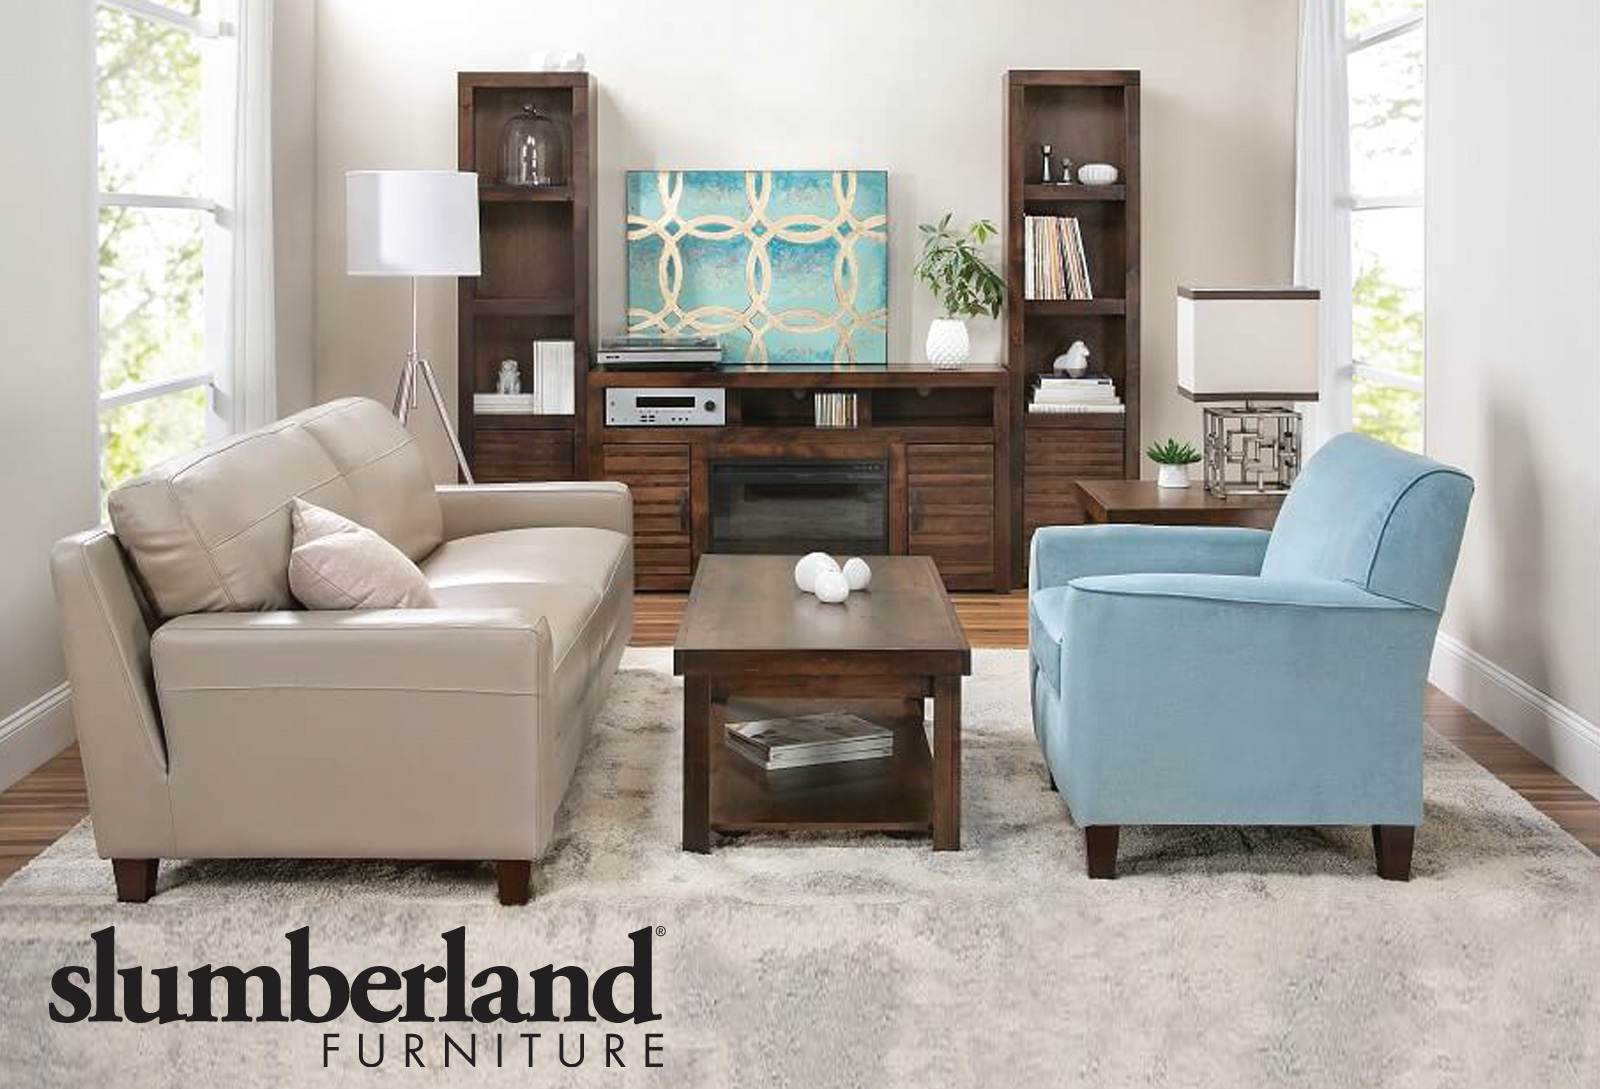 Slumberland Furniture Mission and Values. Our mission is to improve the life of each customer. We strive to uphold this promise through our products, our service, and our company values.